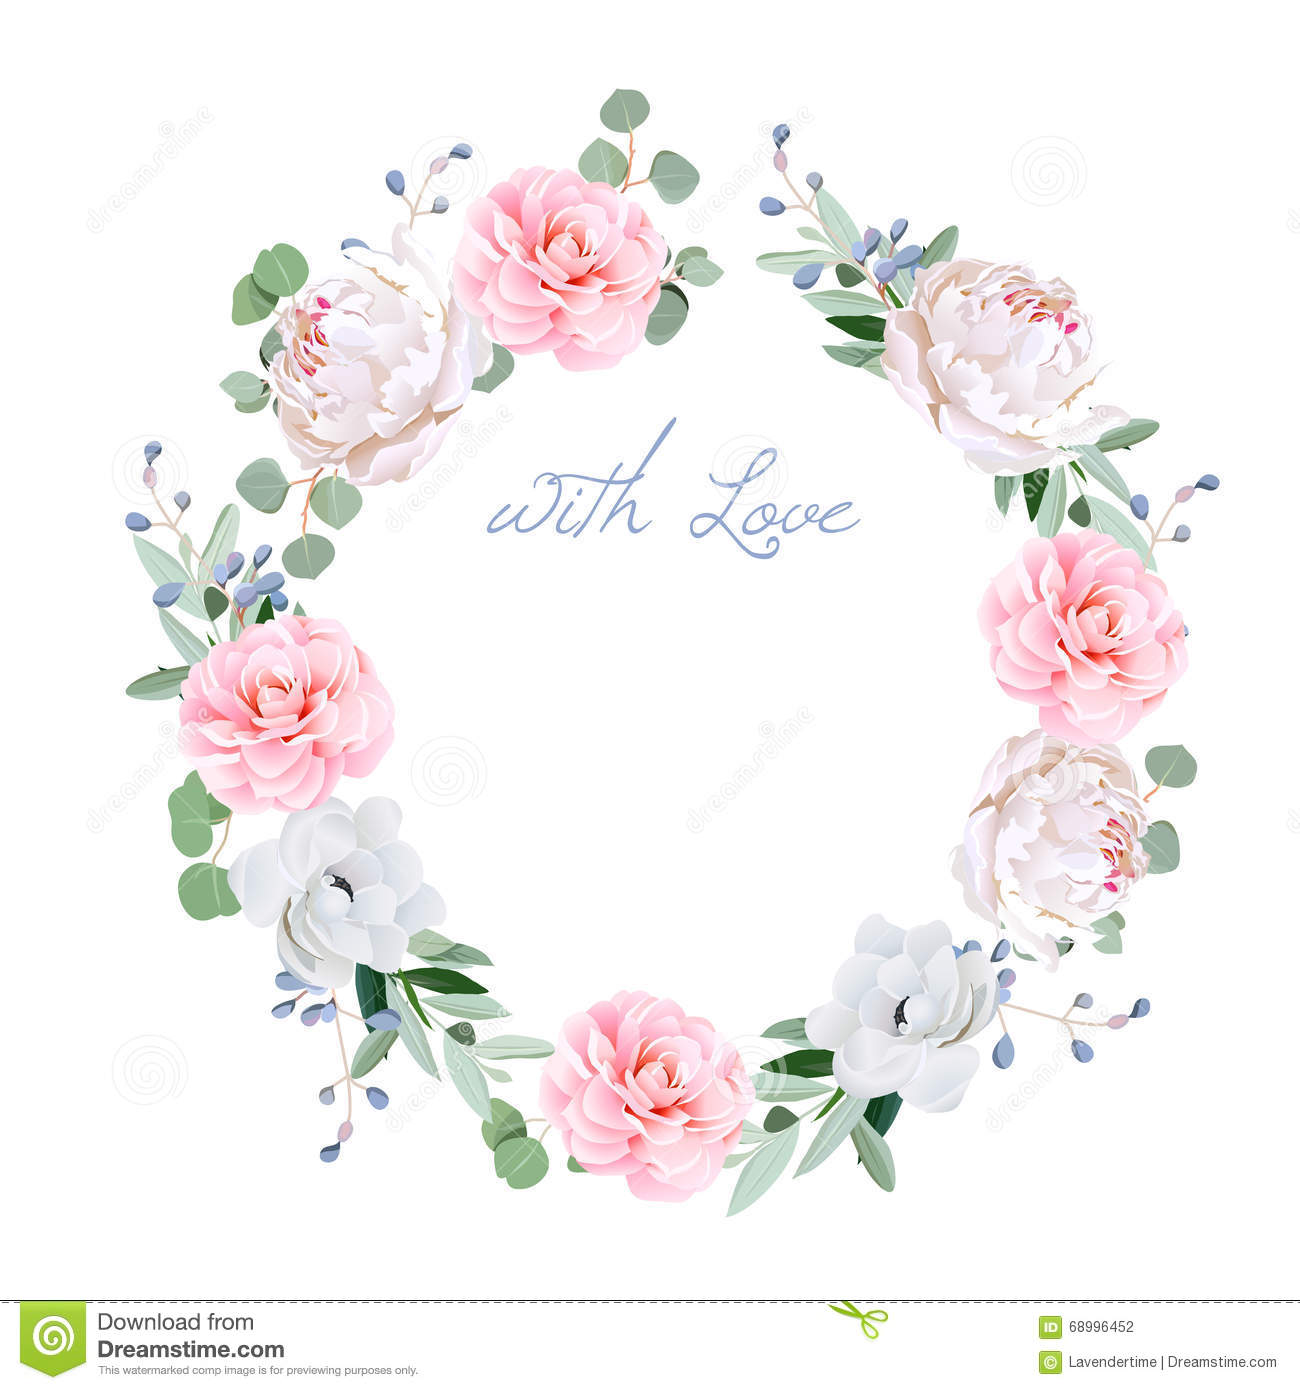 Spring fresh peony, anemone, camellia, brunia flowers and eucaliptis leaves round vector frame